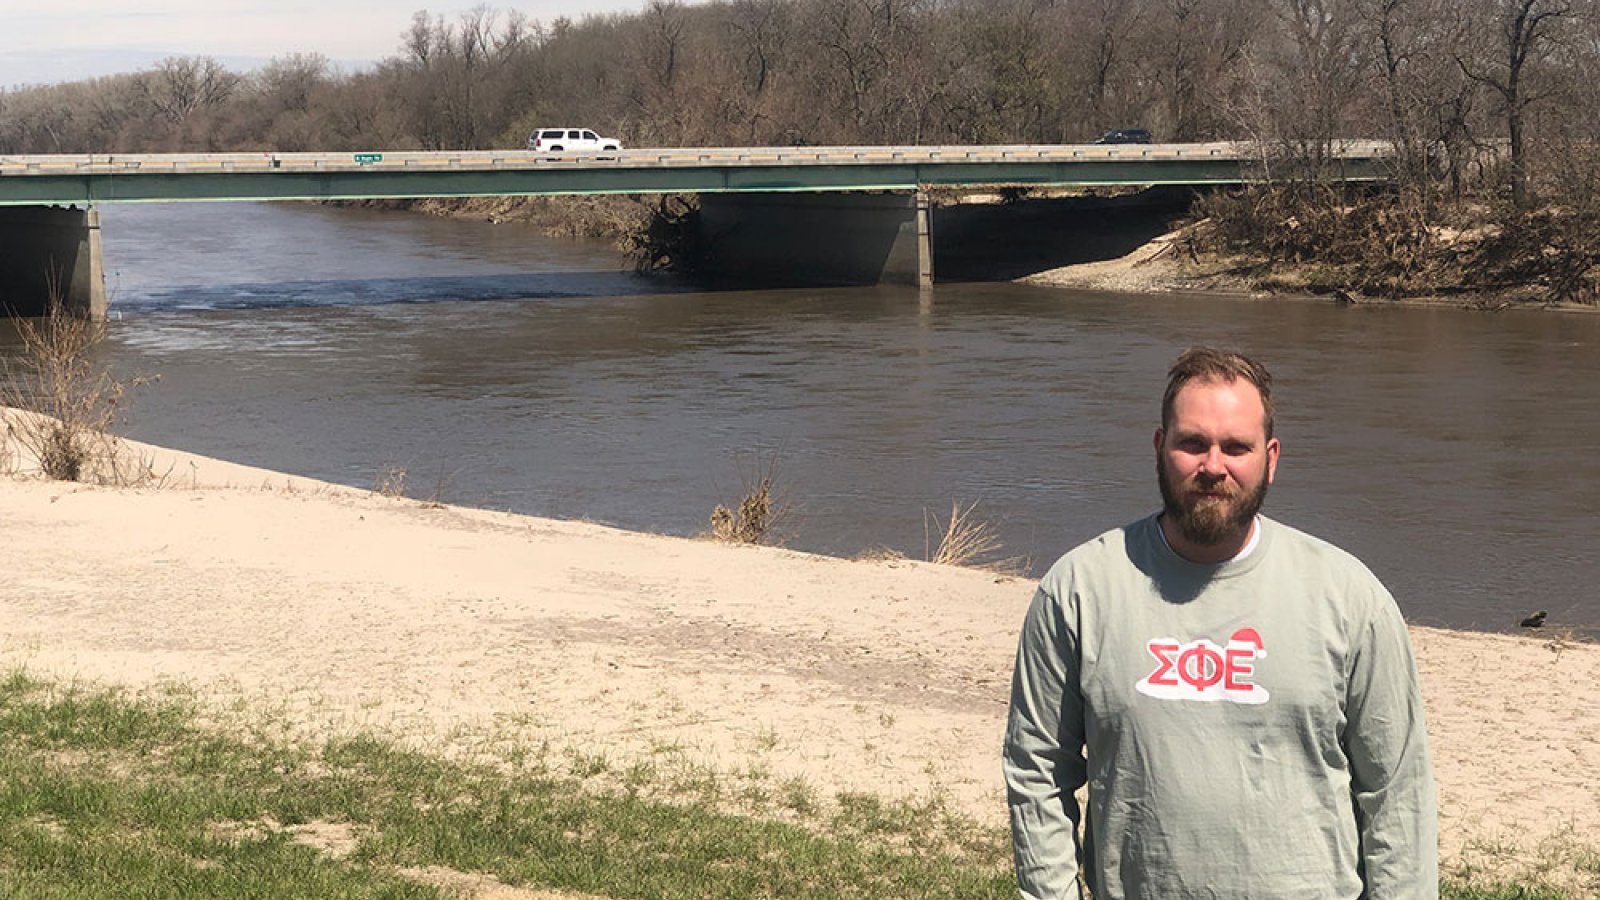 Kyle Rotert, a senior in architectural engineering, stands on the levee near the Maple Street bridge in Waterloo. In March, the Elkhorn River surged more than 5 feet above flood stage. Rotert said he learned plenty about engineering by helping to monitor the levees during those hectic days.